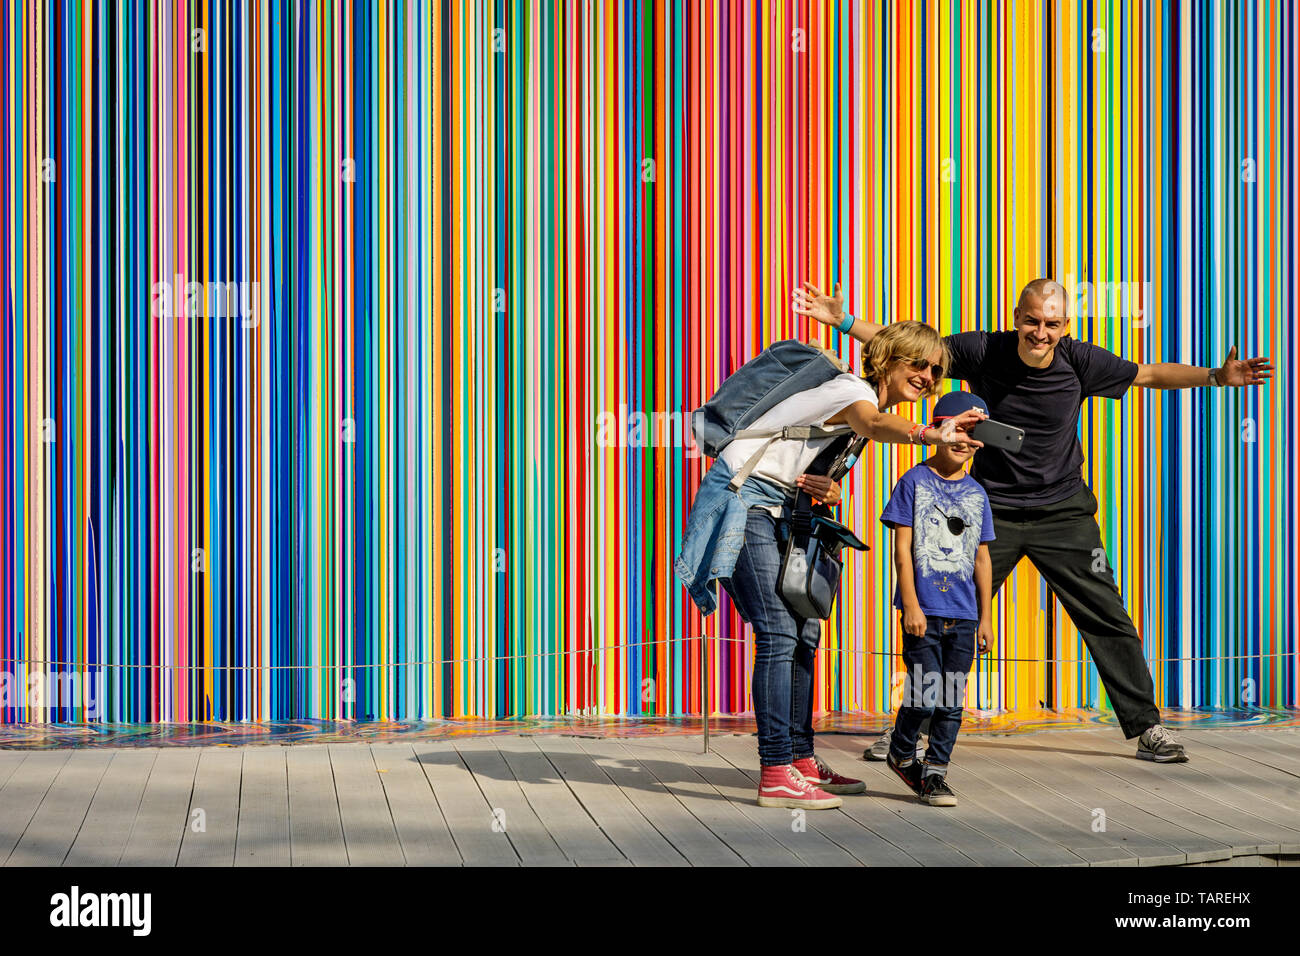 A family take a selfie portrait in front the art installation Giardini Colourfall by artist Ian Davenport at the 2017 Venice Biennale, Venice Italy. - Stock Image